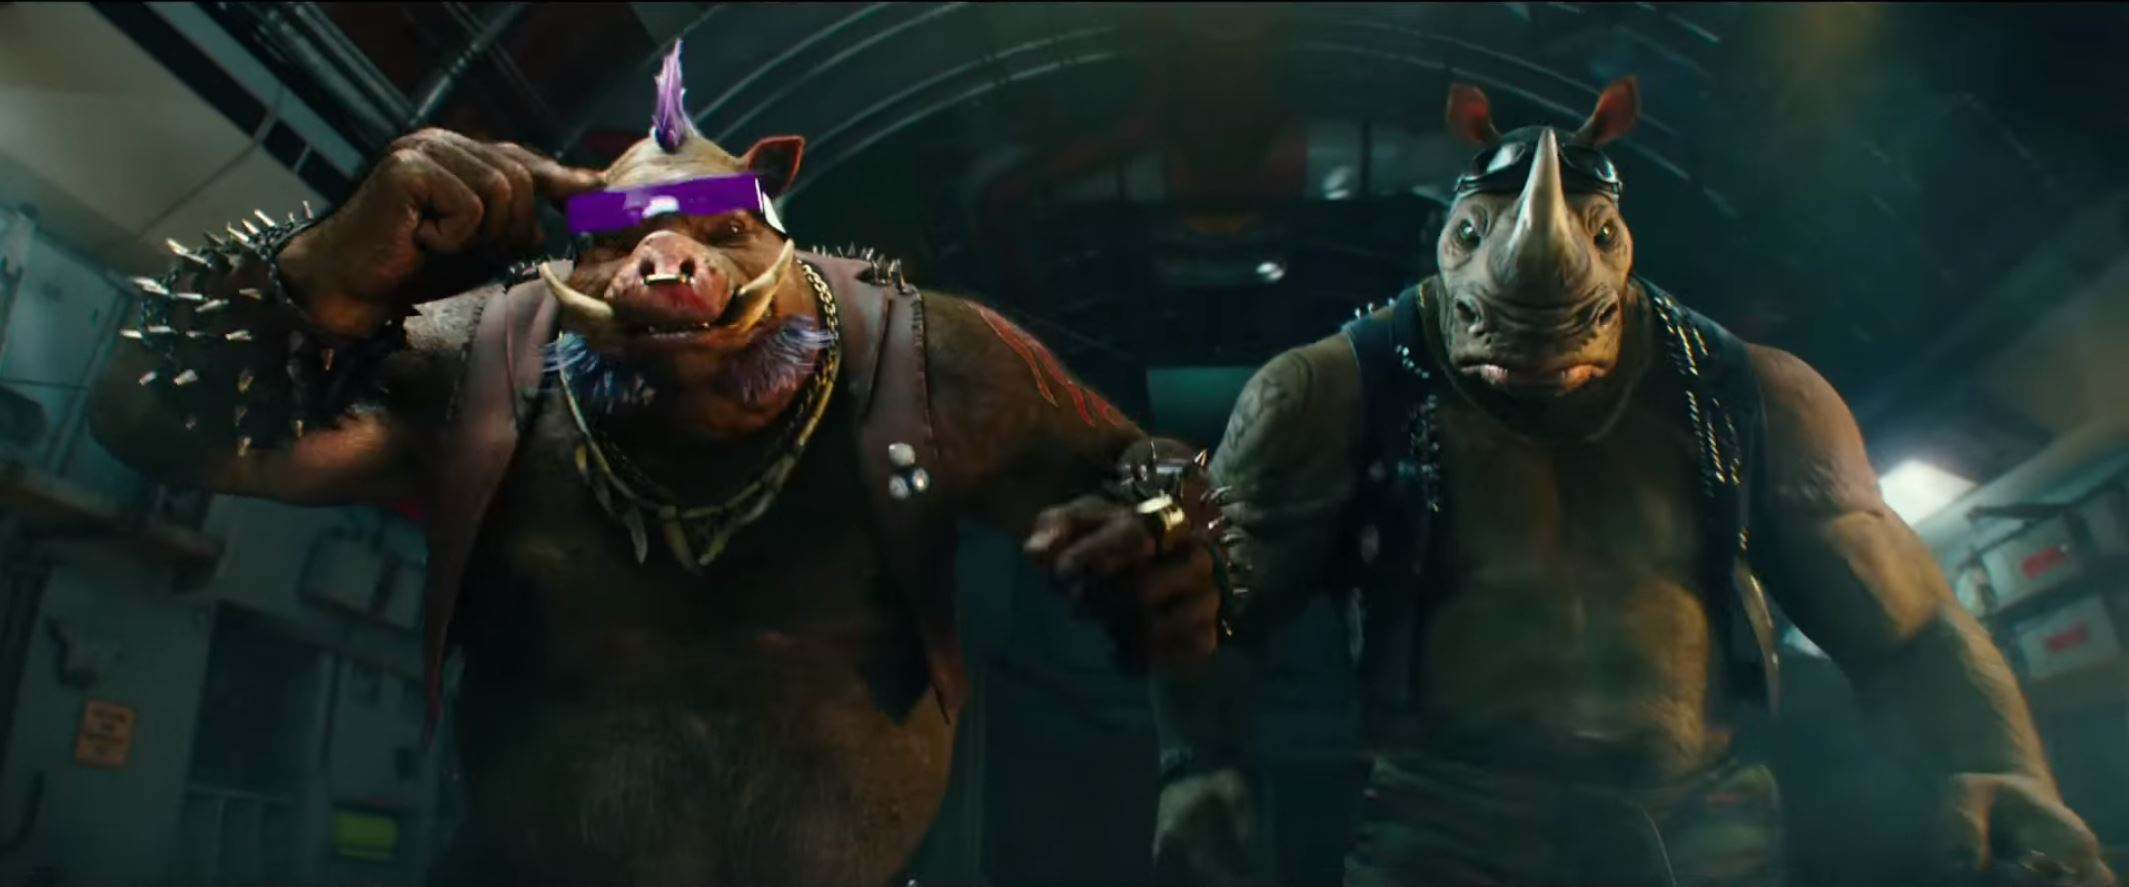 New The Teenage Mutant Ninja Turtles: Out of the Shadows Trailer!